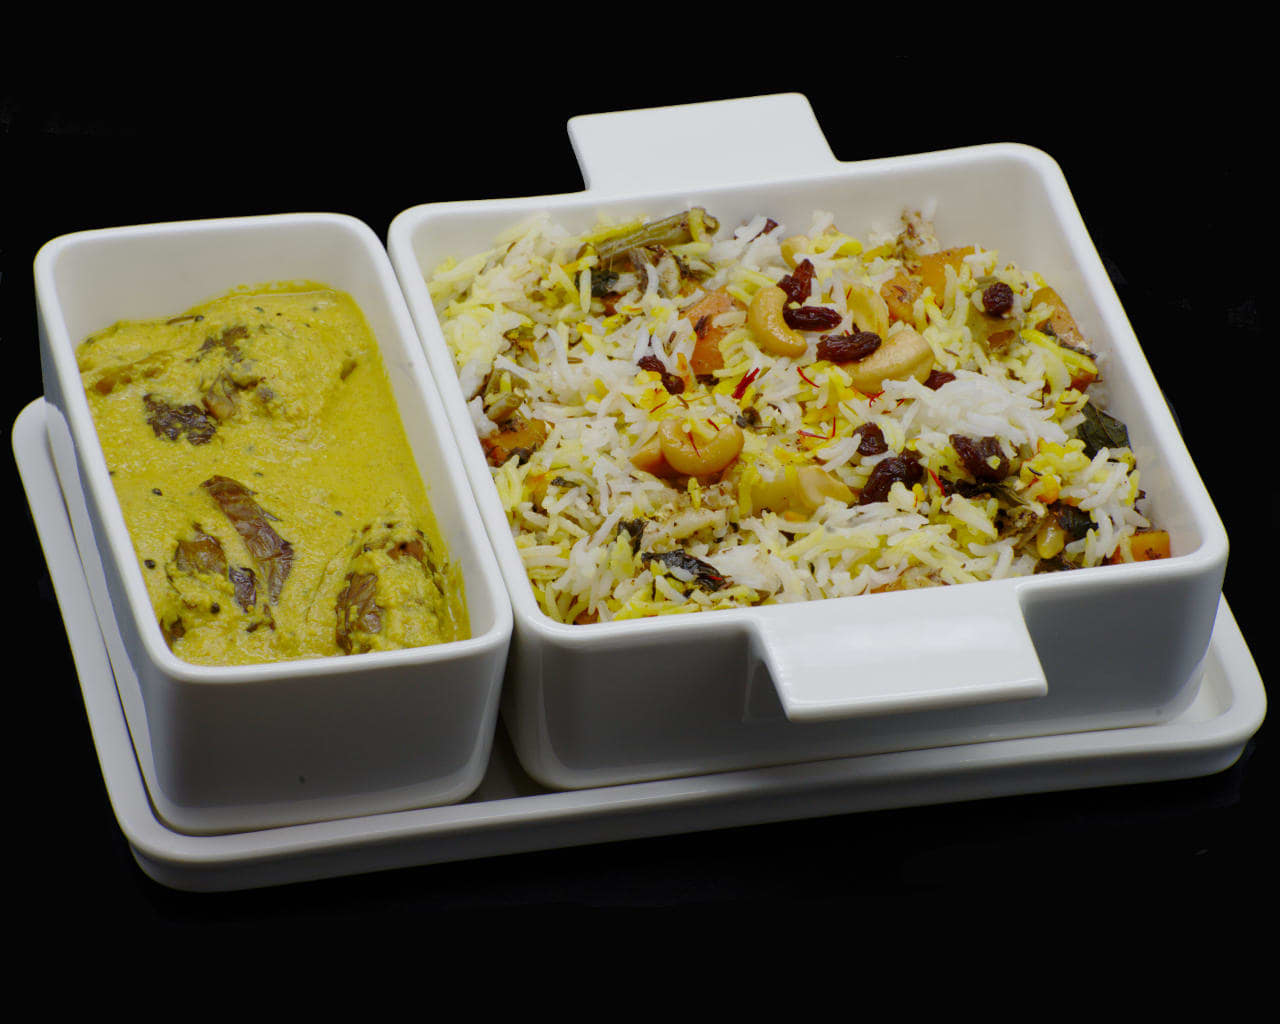 Hyderabadi Vegetable Dum Biryani Image